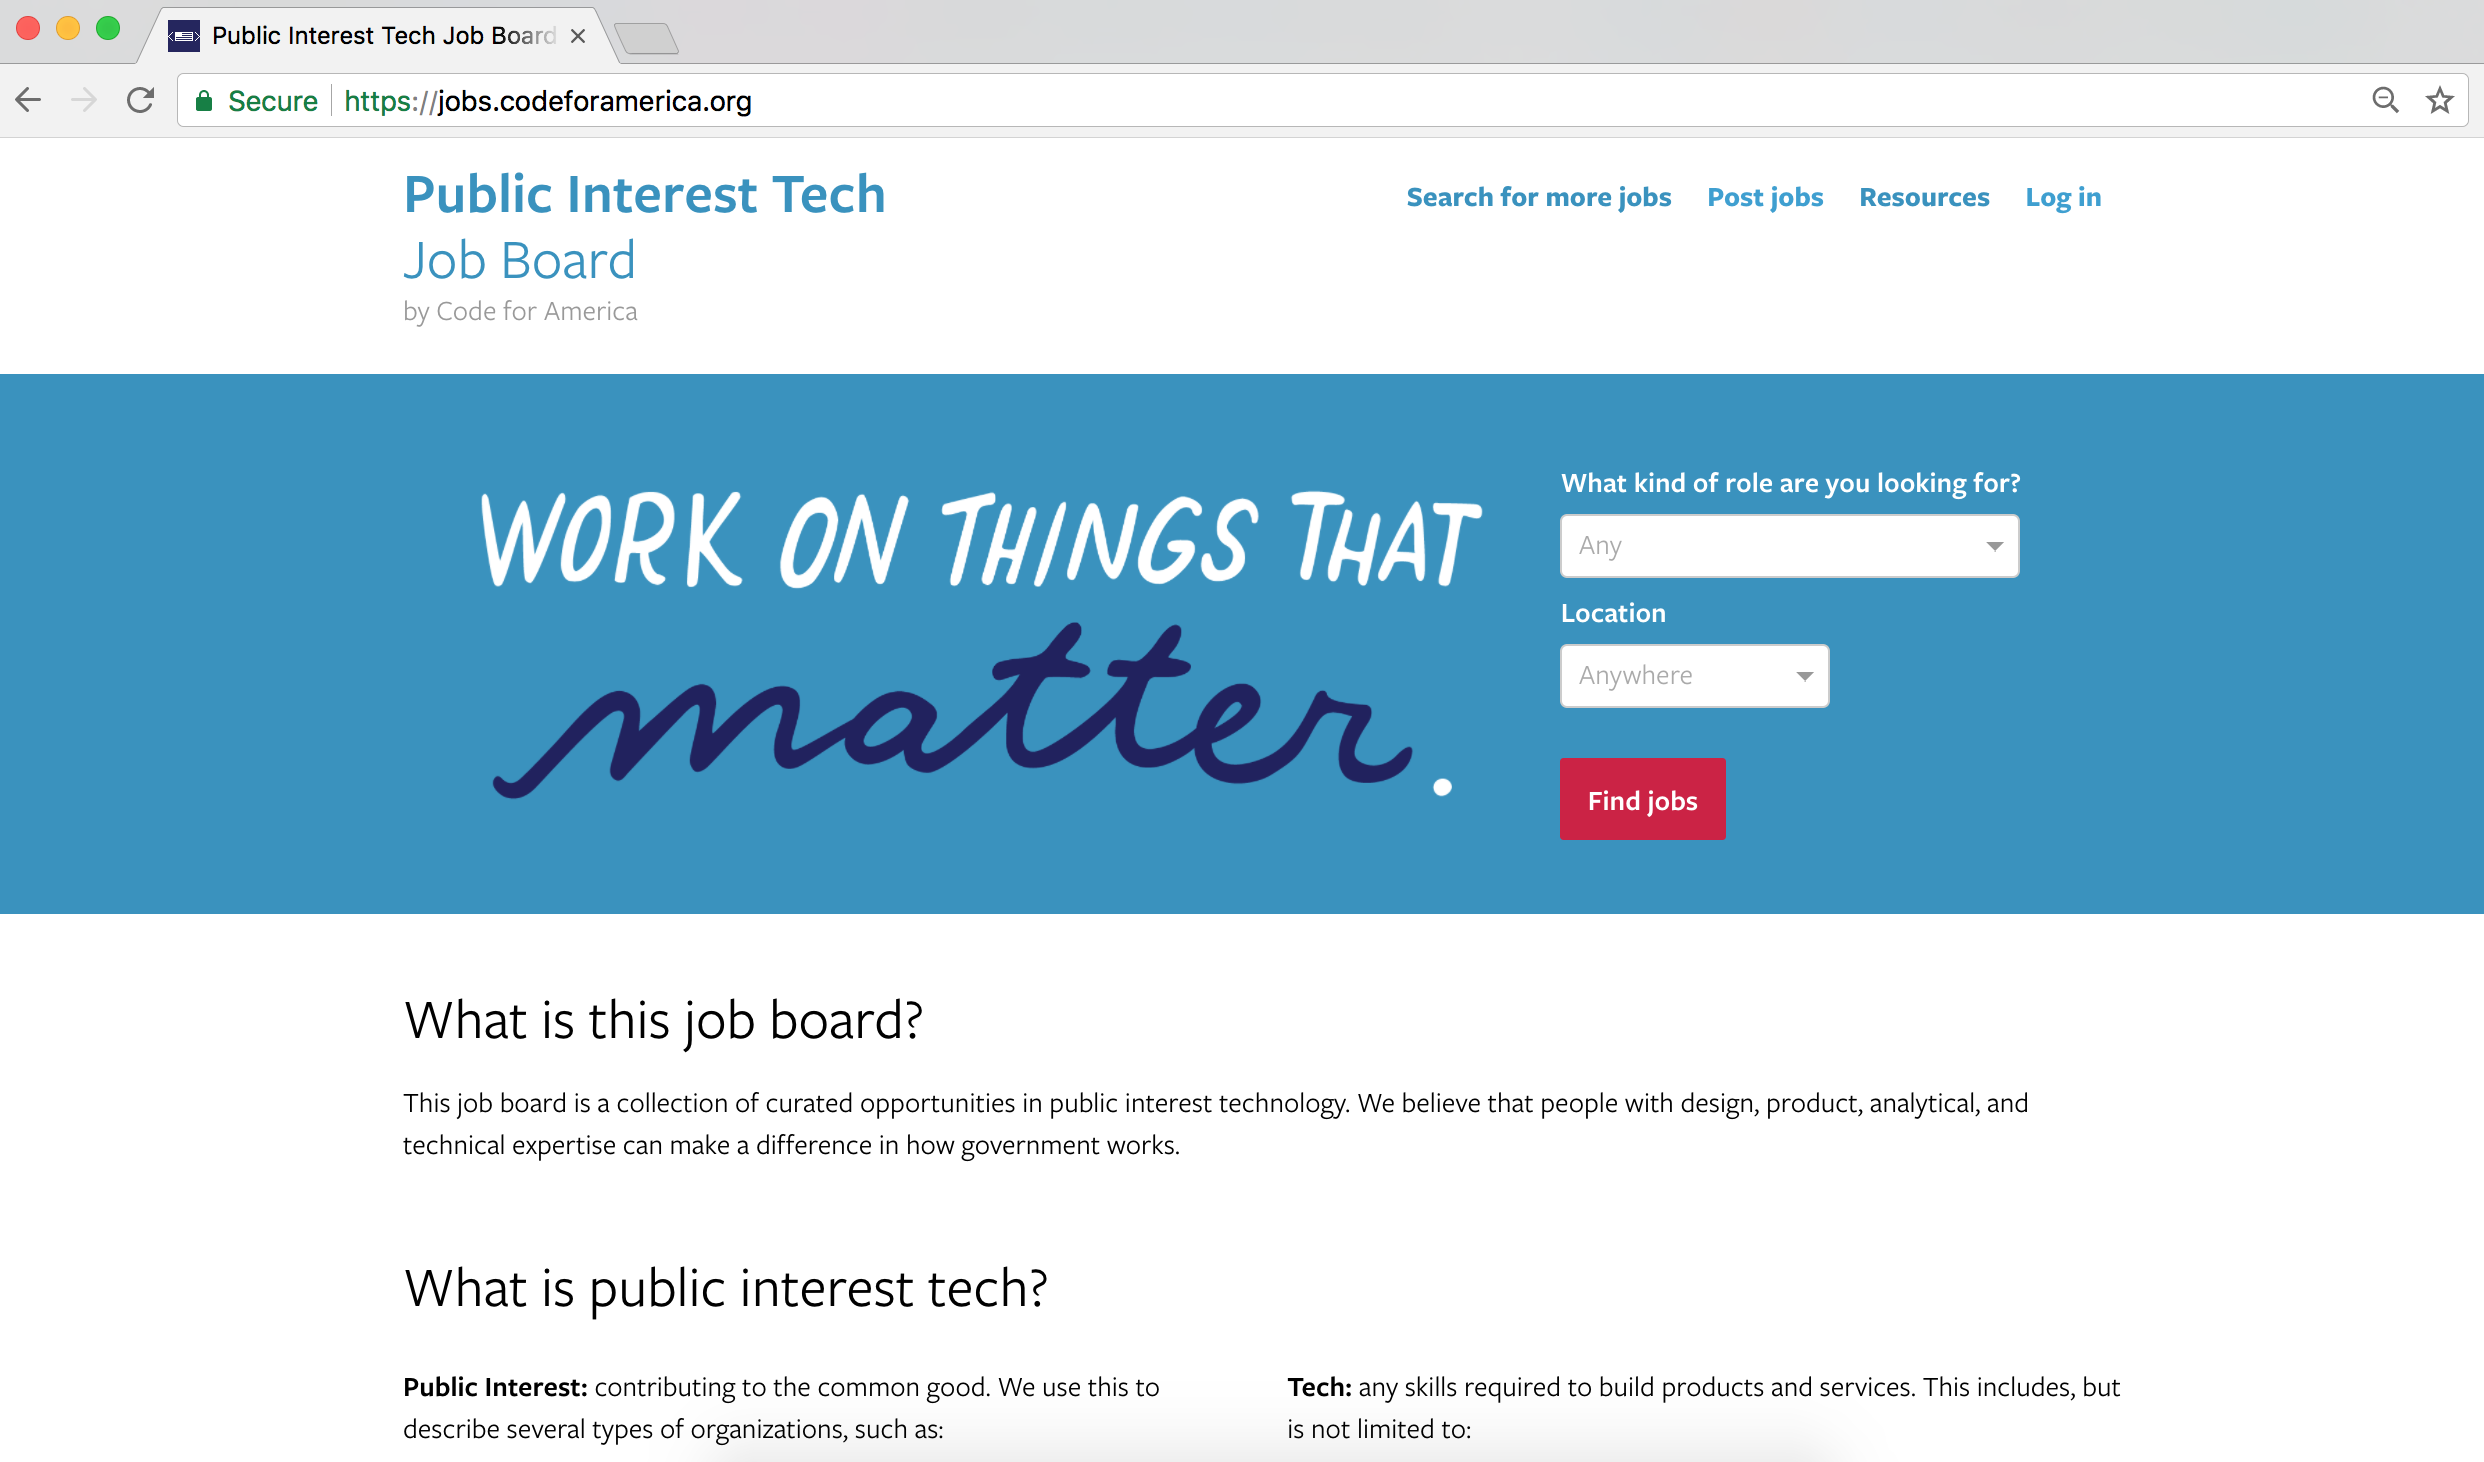 Public interest tech job board:  jobs.codeforamerica.org